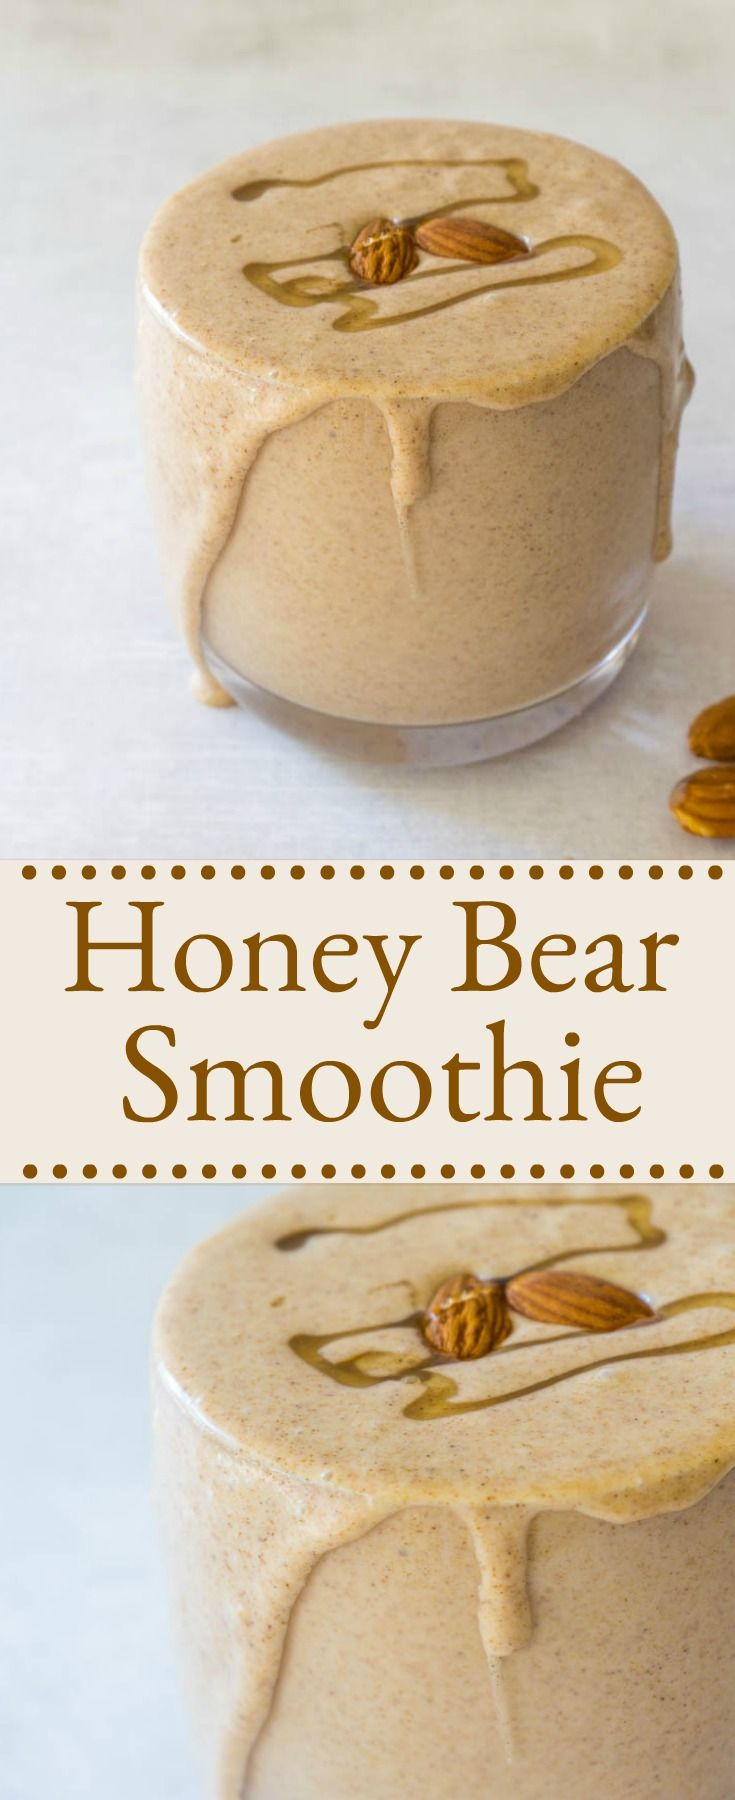 This #honey #bear smoothie is so rich in protein you can have it for breakfast or a decadent dessert.